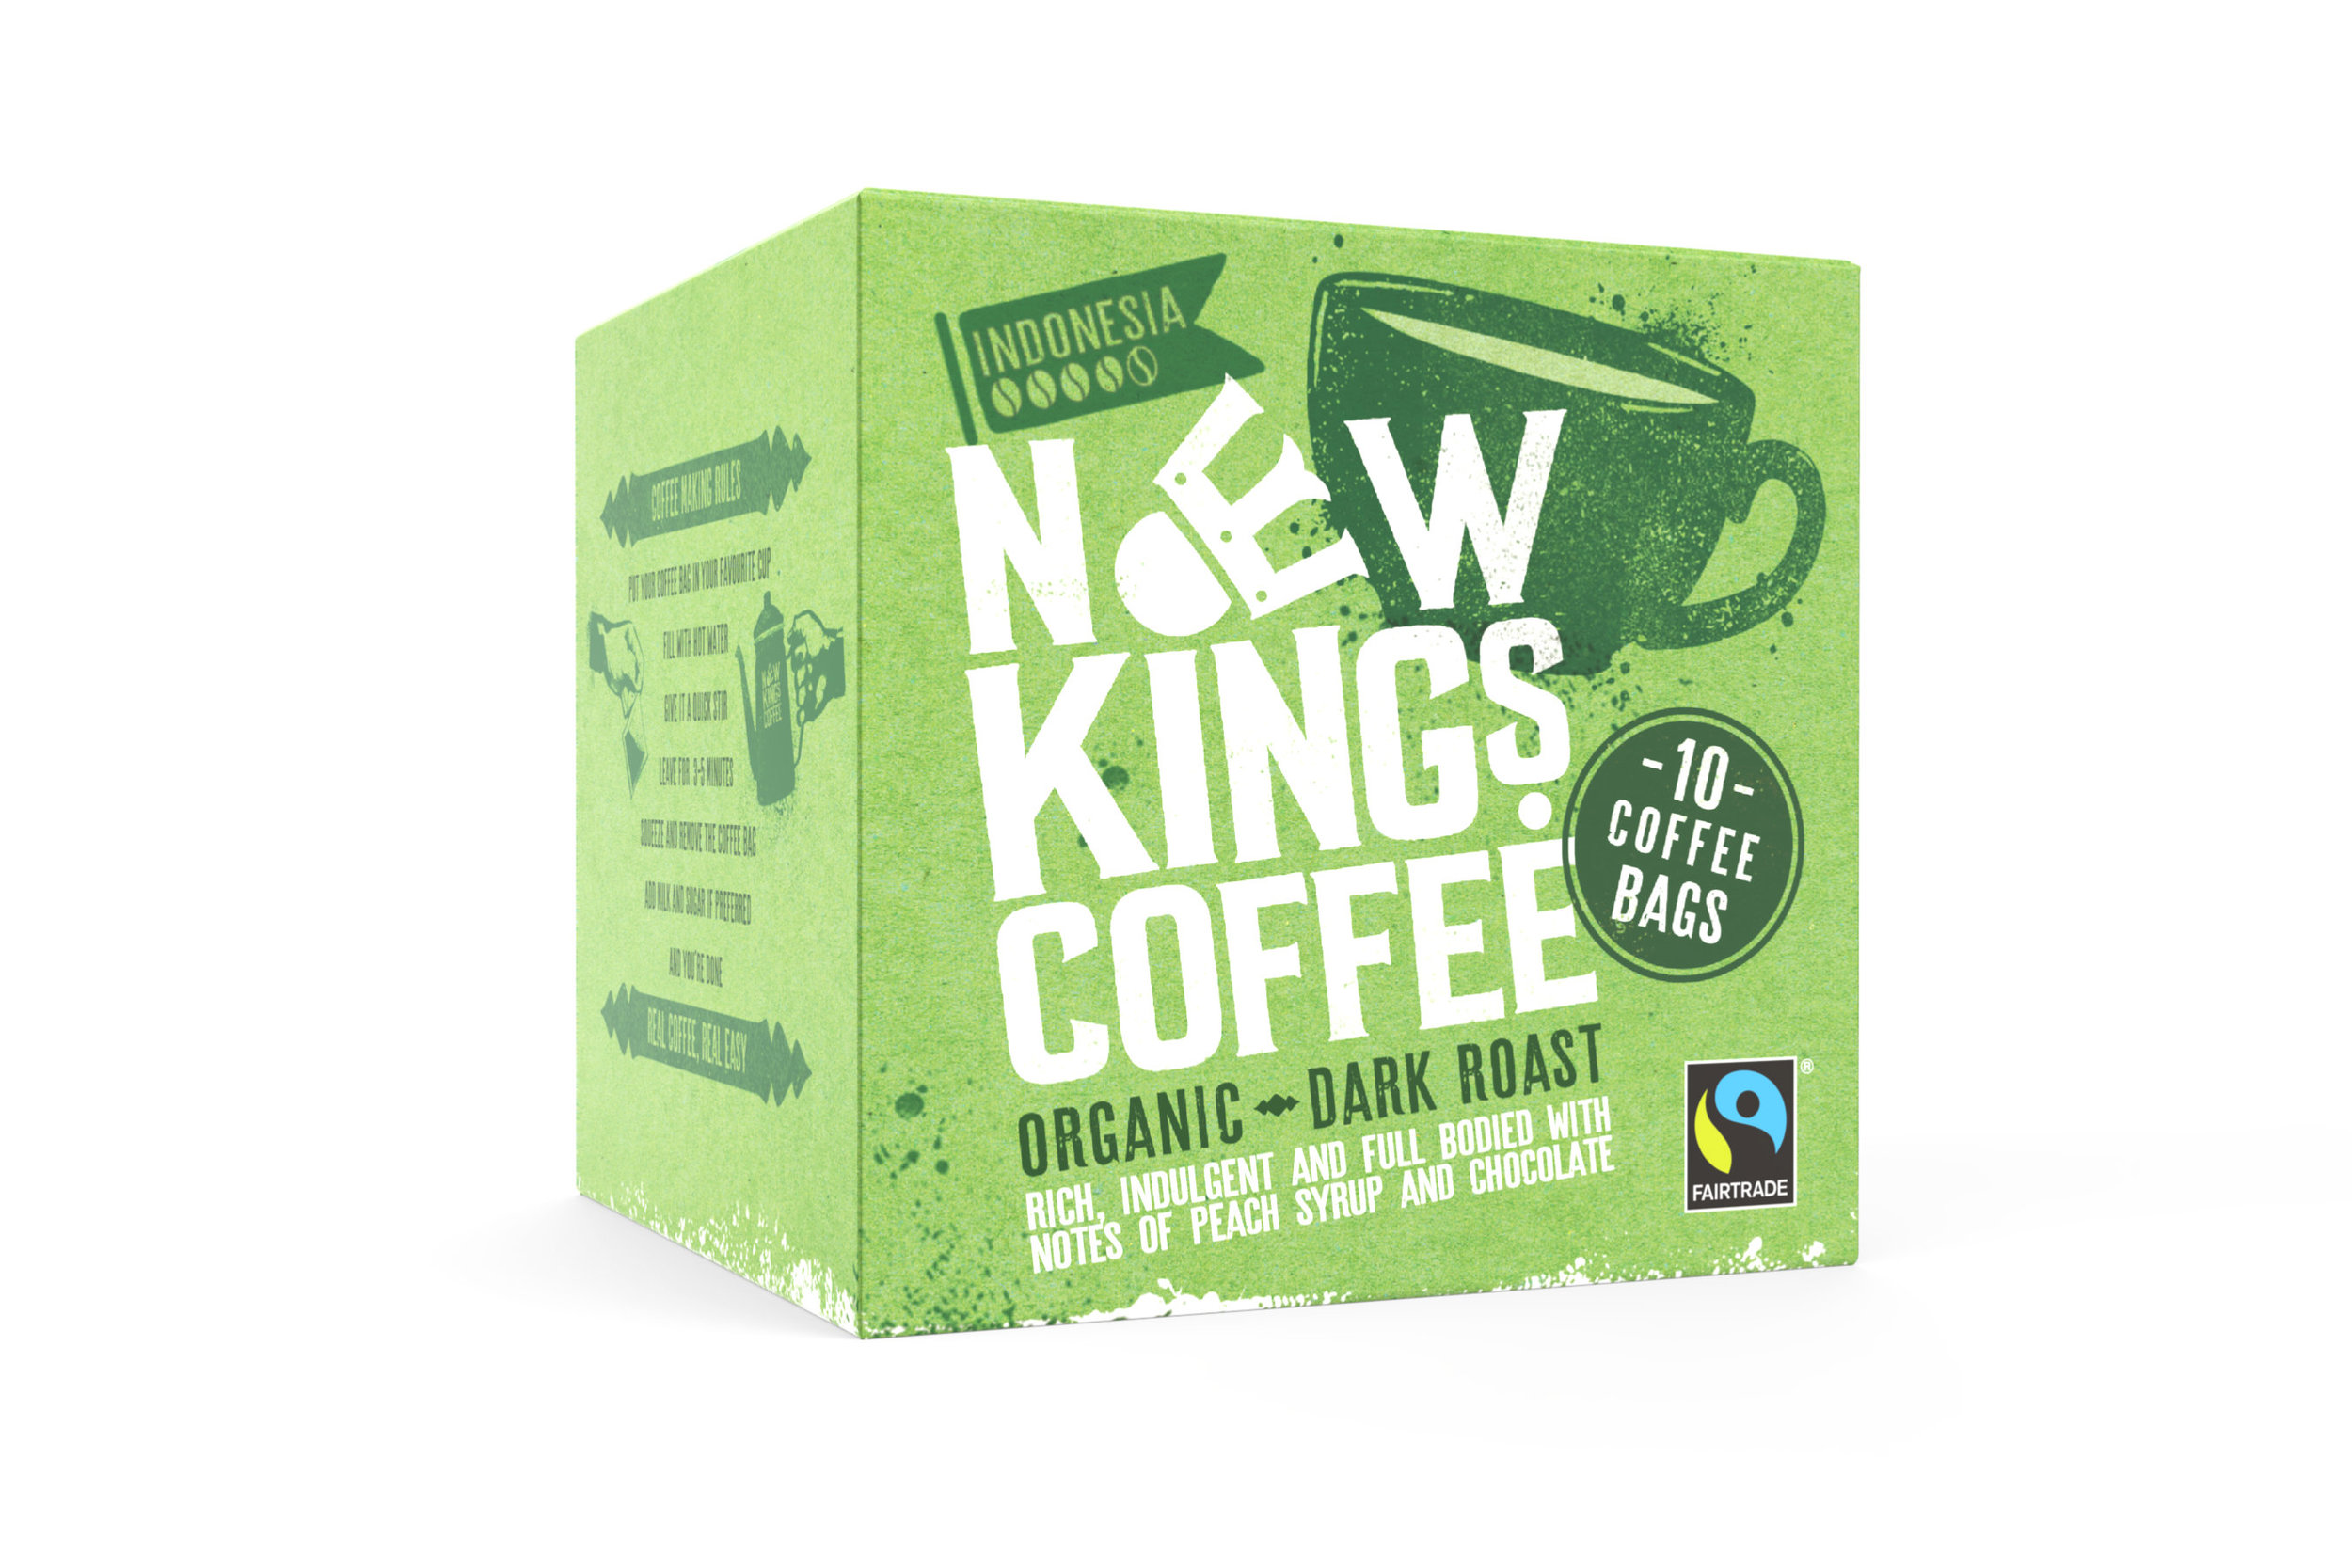 New-Kings-Coffee-Bags-Fairtrade-Organic-Indonesia-Dark-Roast-Front.jpg